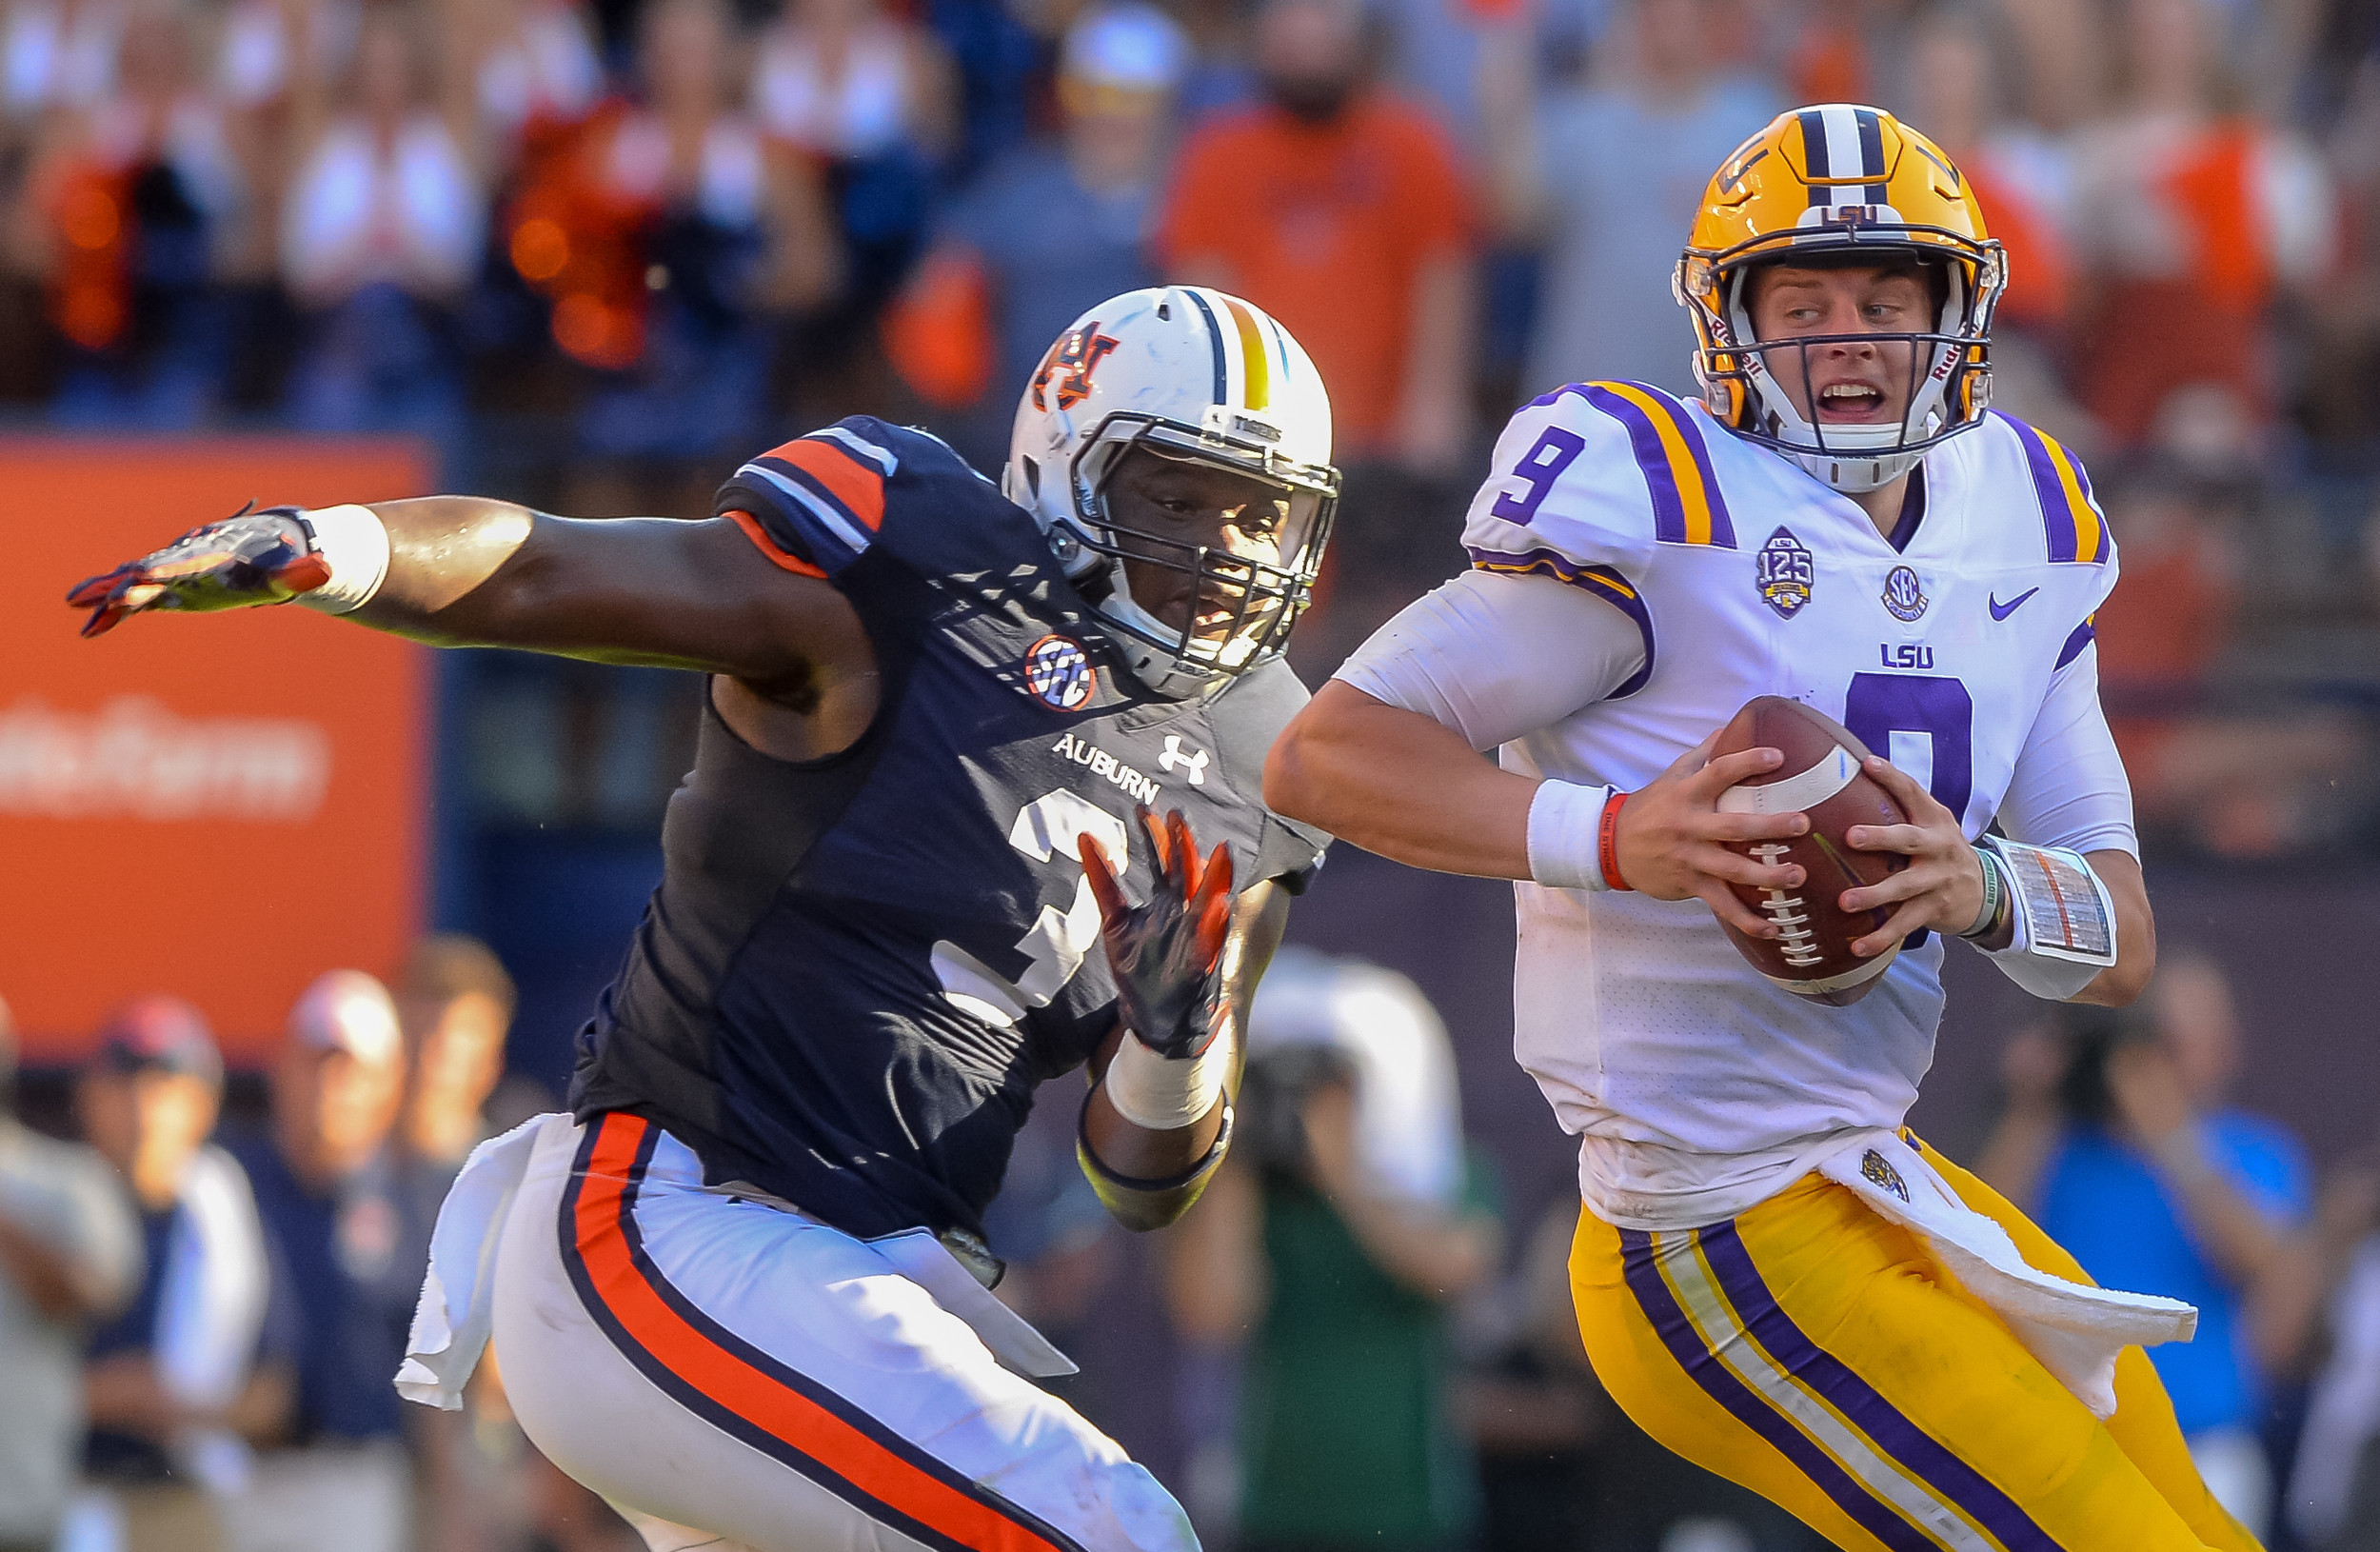 Auburn Tigers defensive lineman Marlon Davidson (3) pressures LSU Tigers quarterback Joe Burrow (9) during the second half of Saturday's game, at Jordan Hare Stadium in Auburn. (Contributed by Jeff Johnsey)